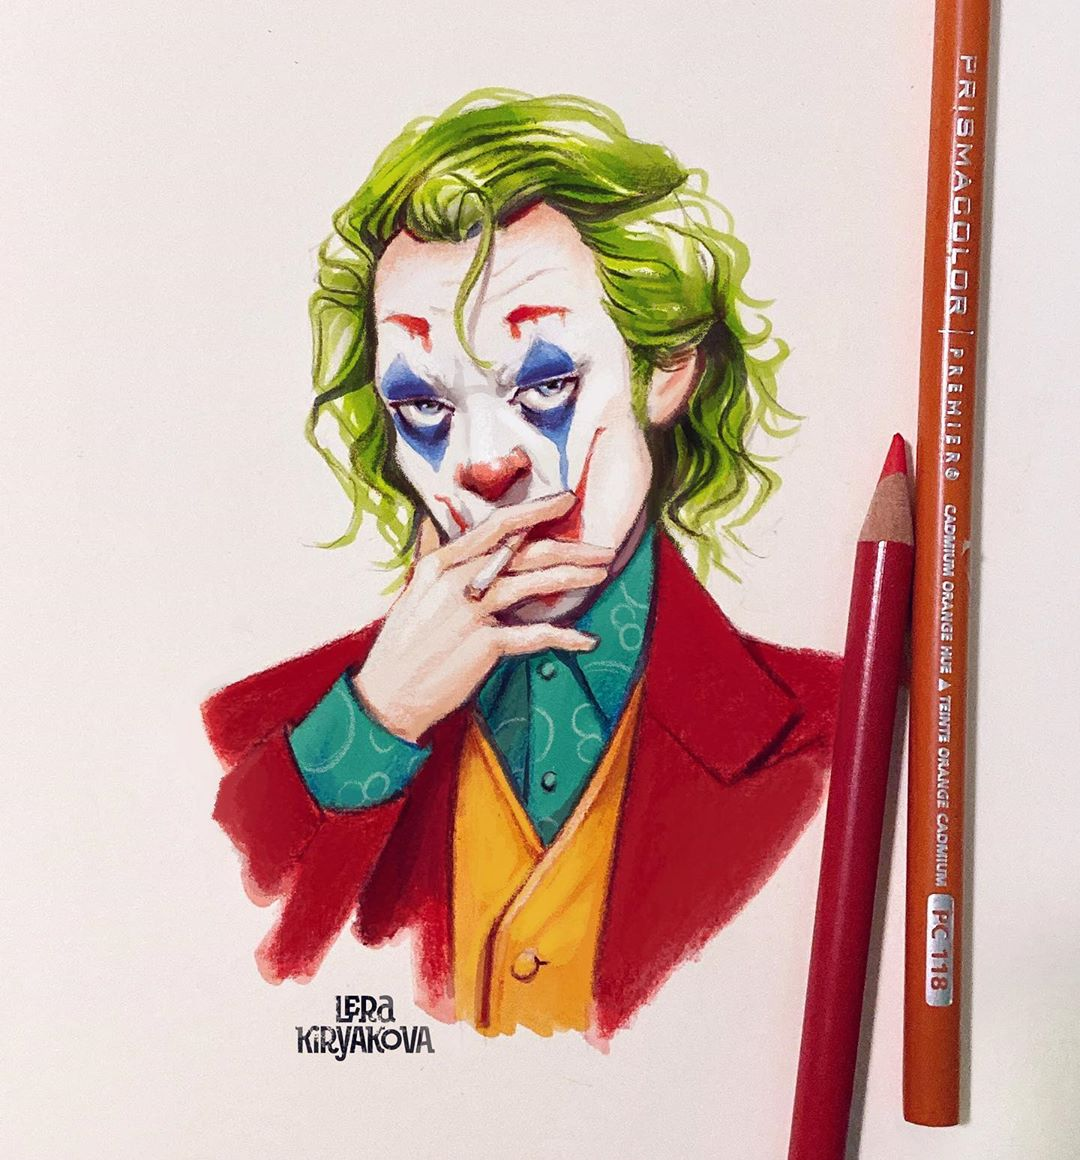 Russian Artists Distinctive Drawing Style Infuses A New Life Into Celebrity Cartoons 9